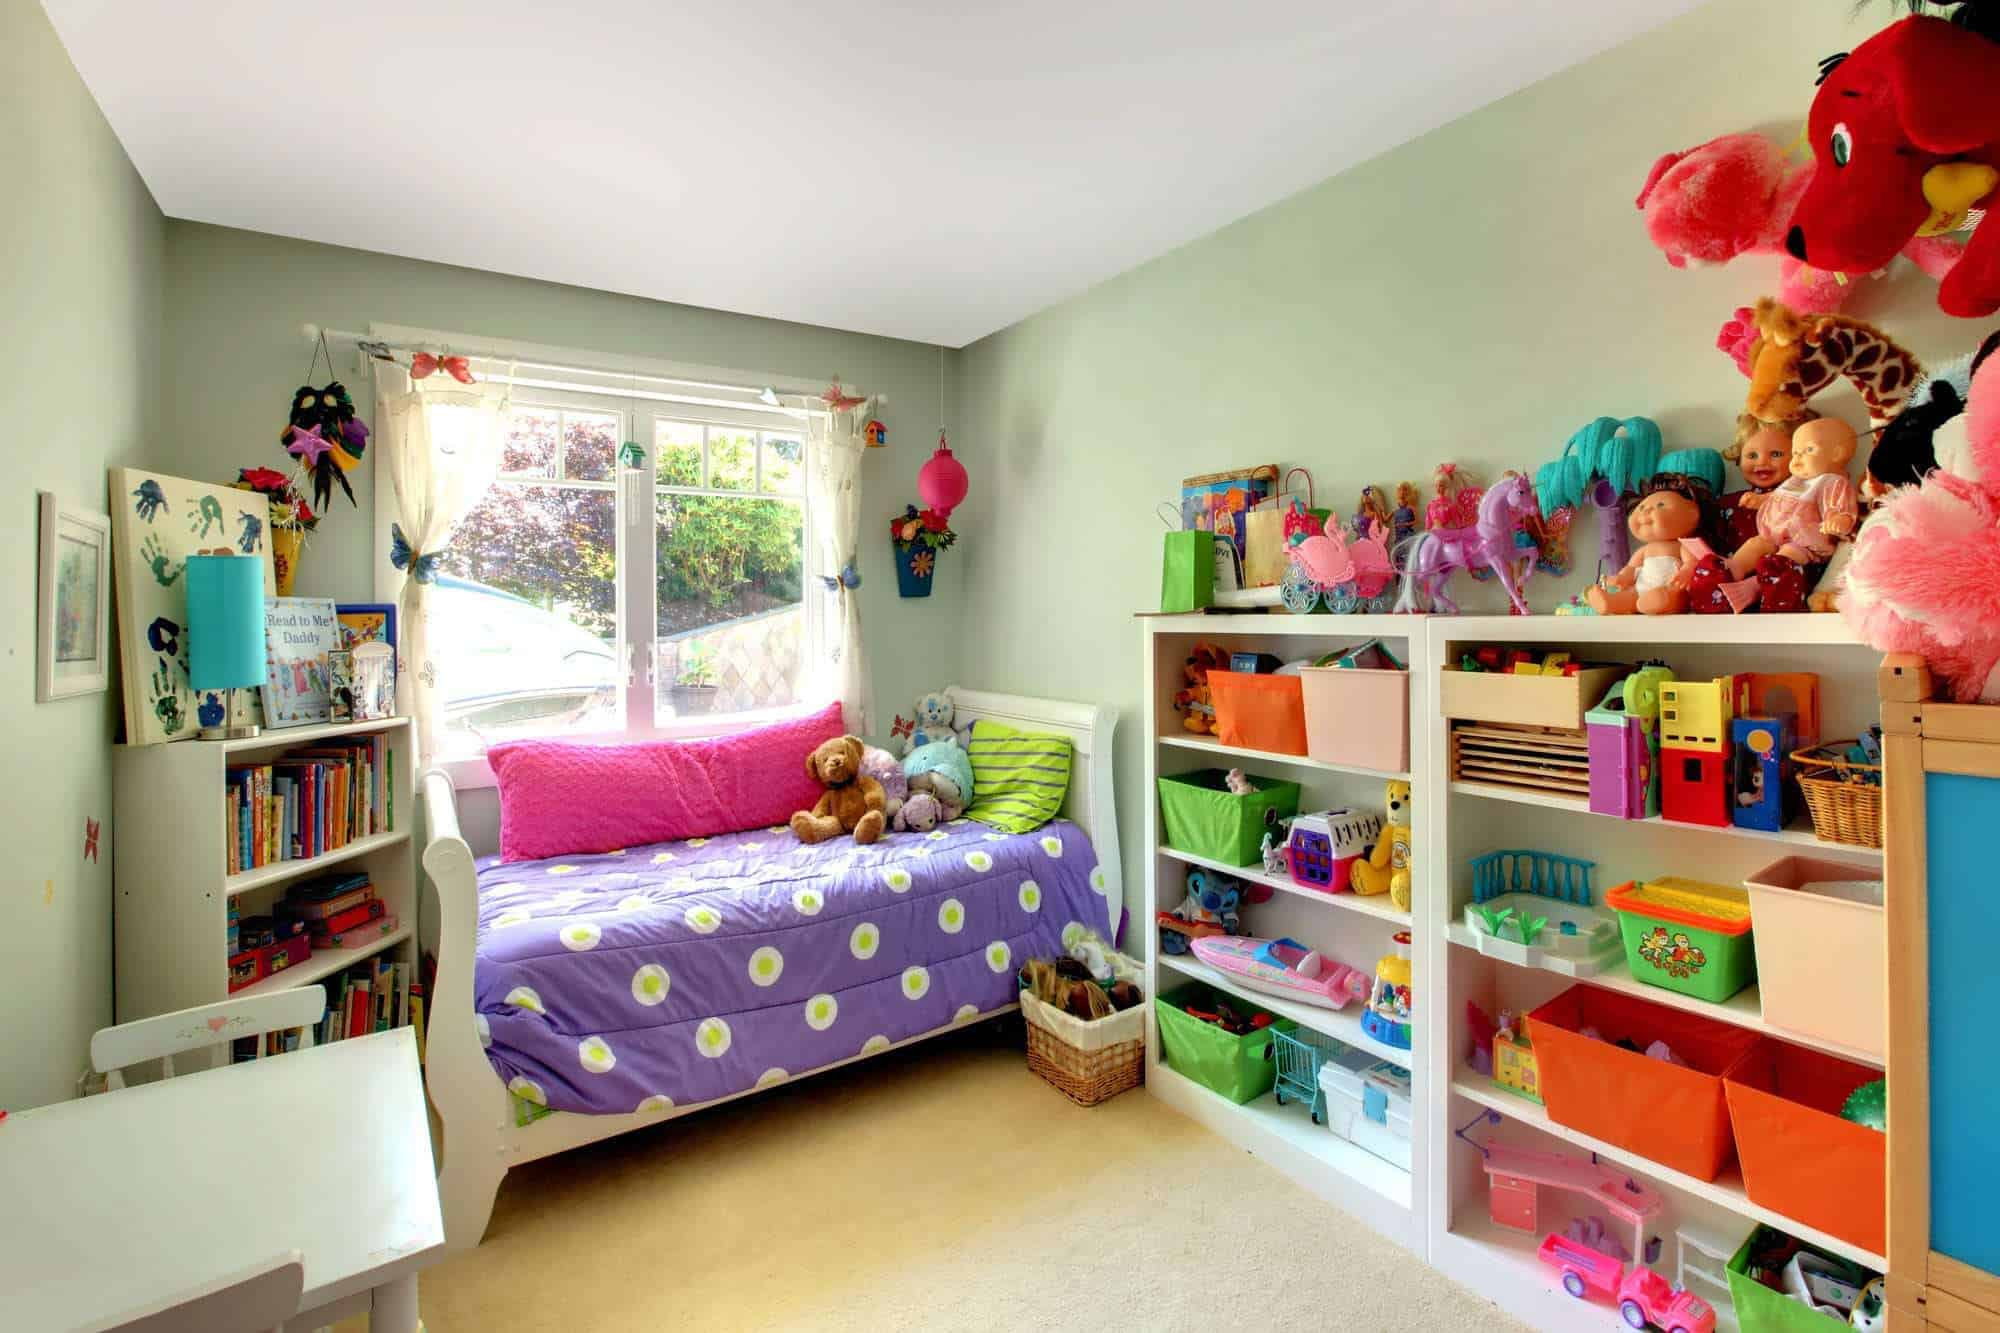 Tidy kids bedroom cleaned and clutter-free